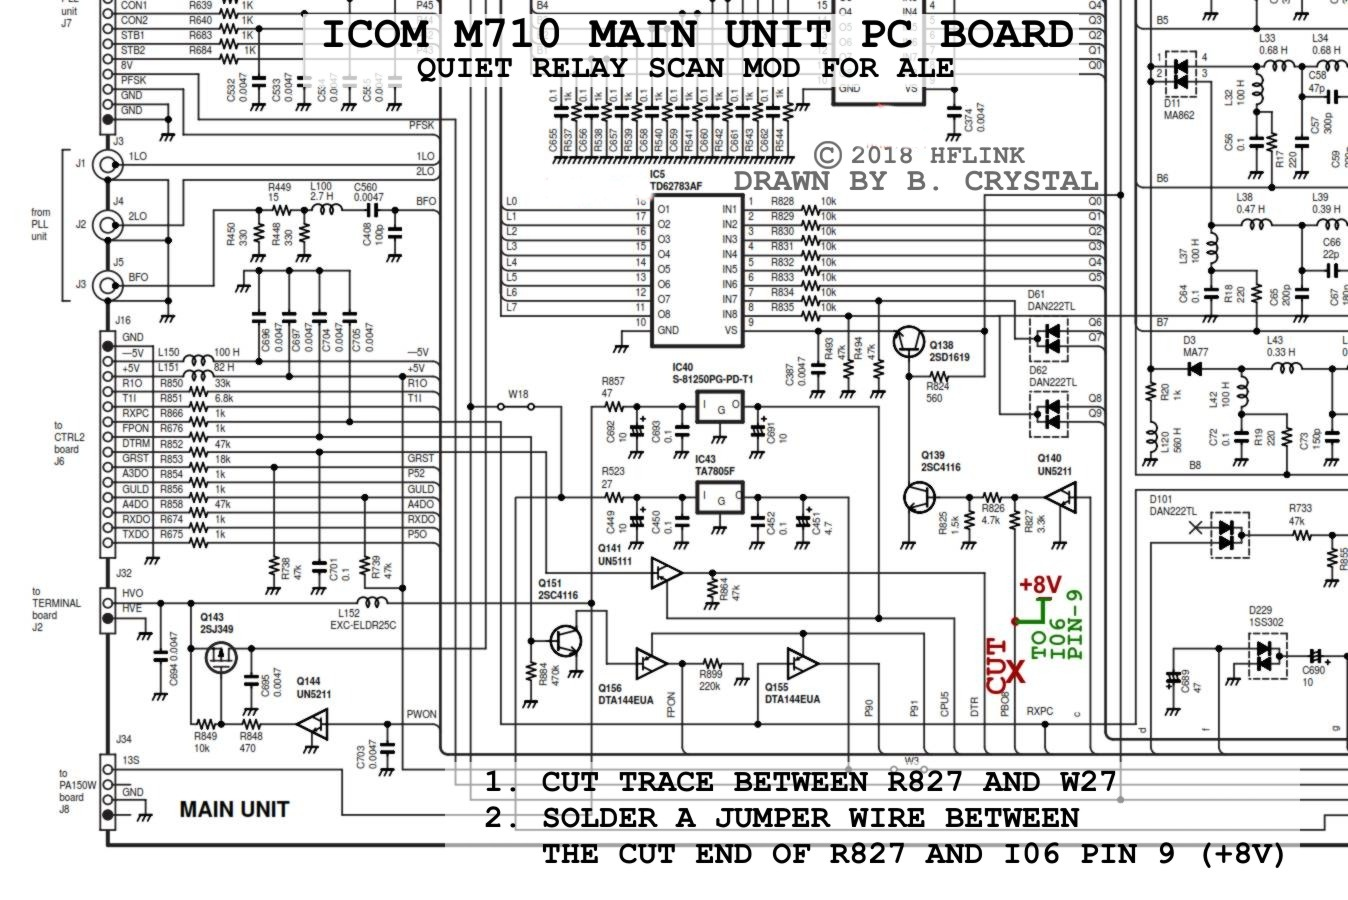 Icom_M710_main_board_quiet_relay_scan_mod_schematic.jpg